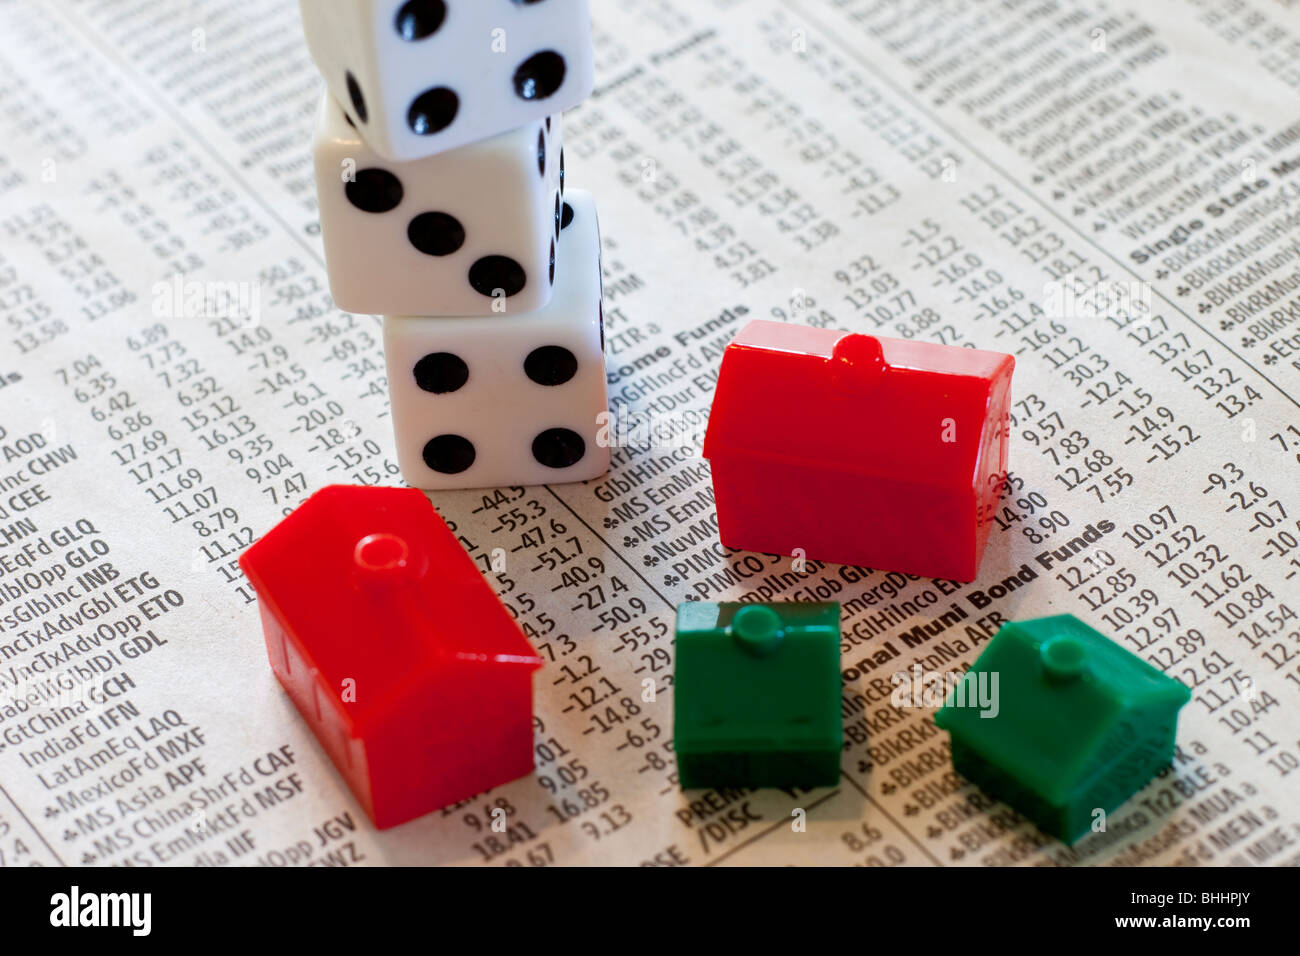 Dice, Monopoly houses and hotels on investment newspaper - Stock Image